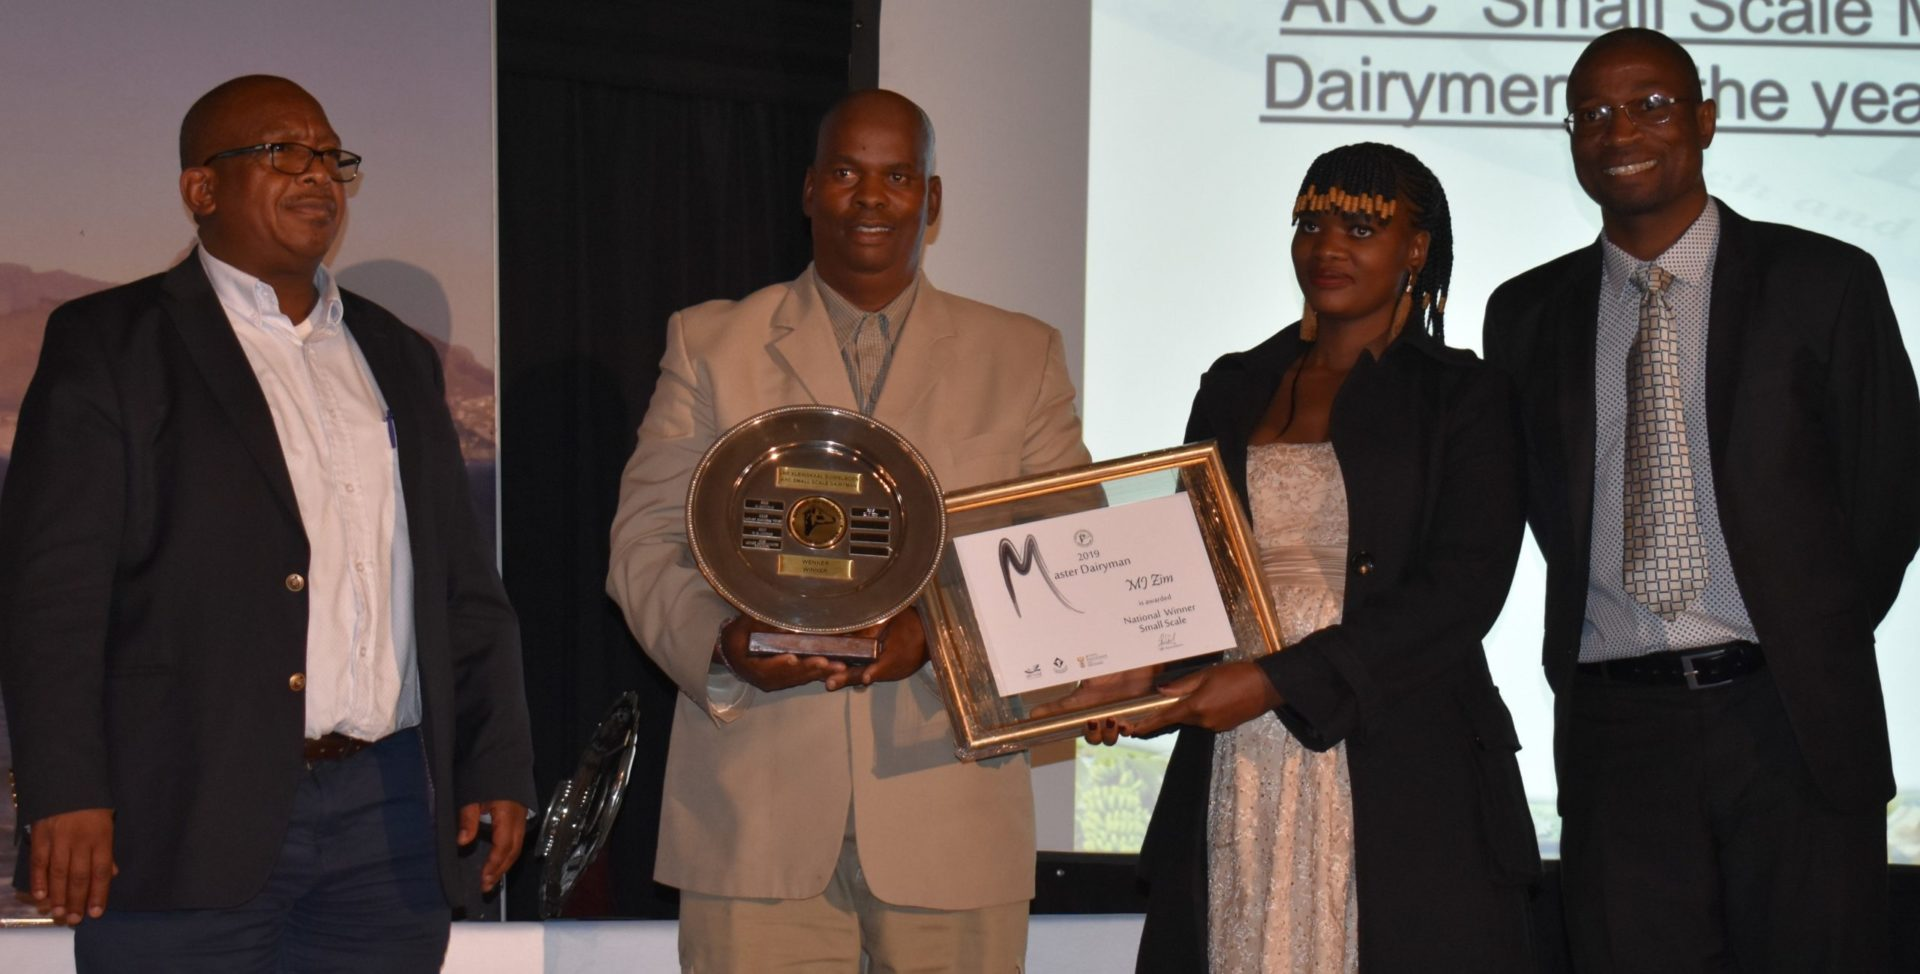 2. Dr Andrew Magadlela (ARC group executive: animal sciences), the late Jan Zim and Nompe Ida Zim (MJ Zim from Kestell in the Free State), and prof. Norman Maiwashe (ARC's general manager: animal production) at the 2019 awards function Photo: Landbouweekblad / Supplied by Agri-Expo